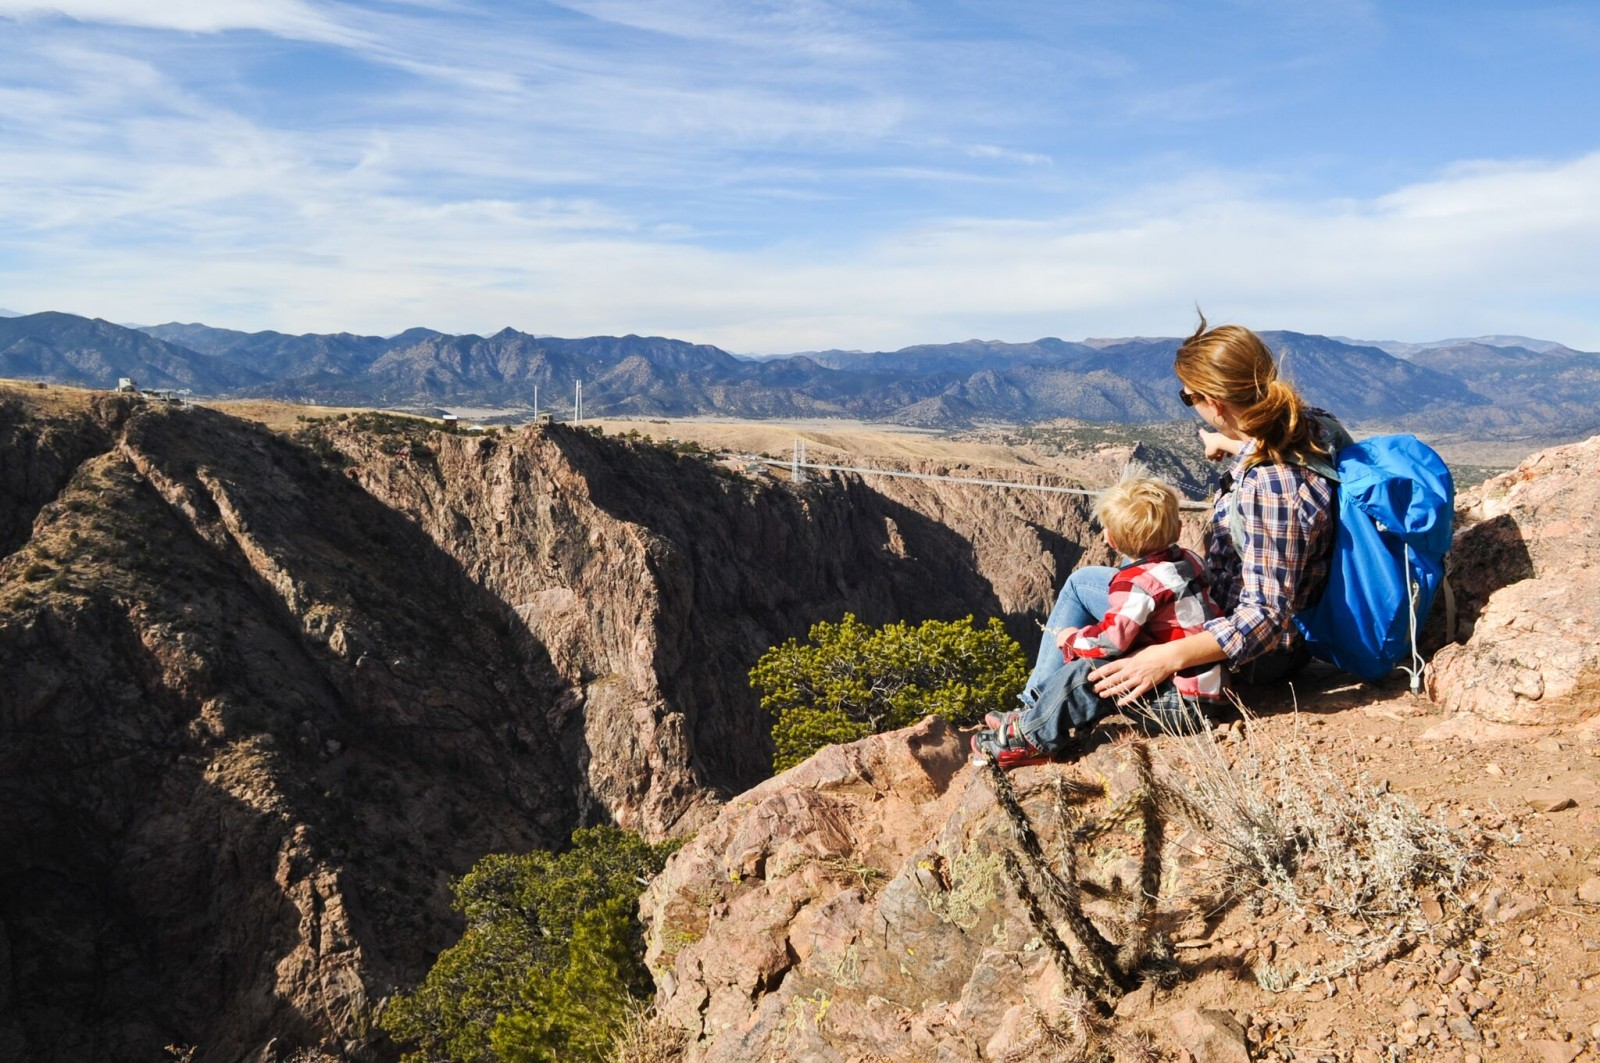 Royal Gorge Region Self-Guided Tours - Royal Gorge Region